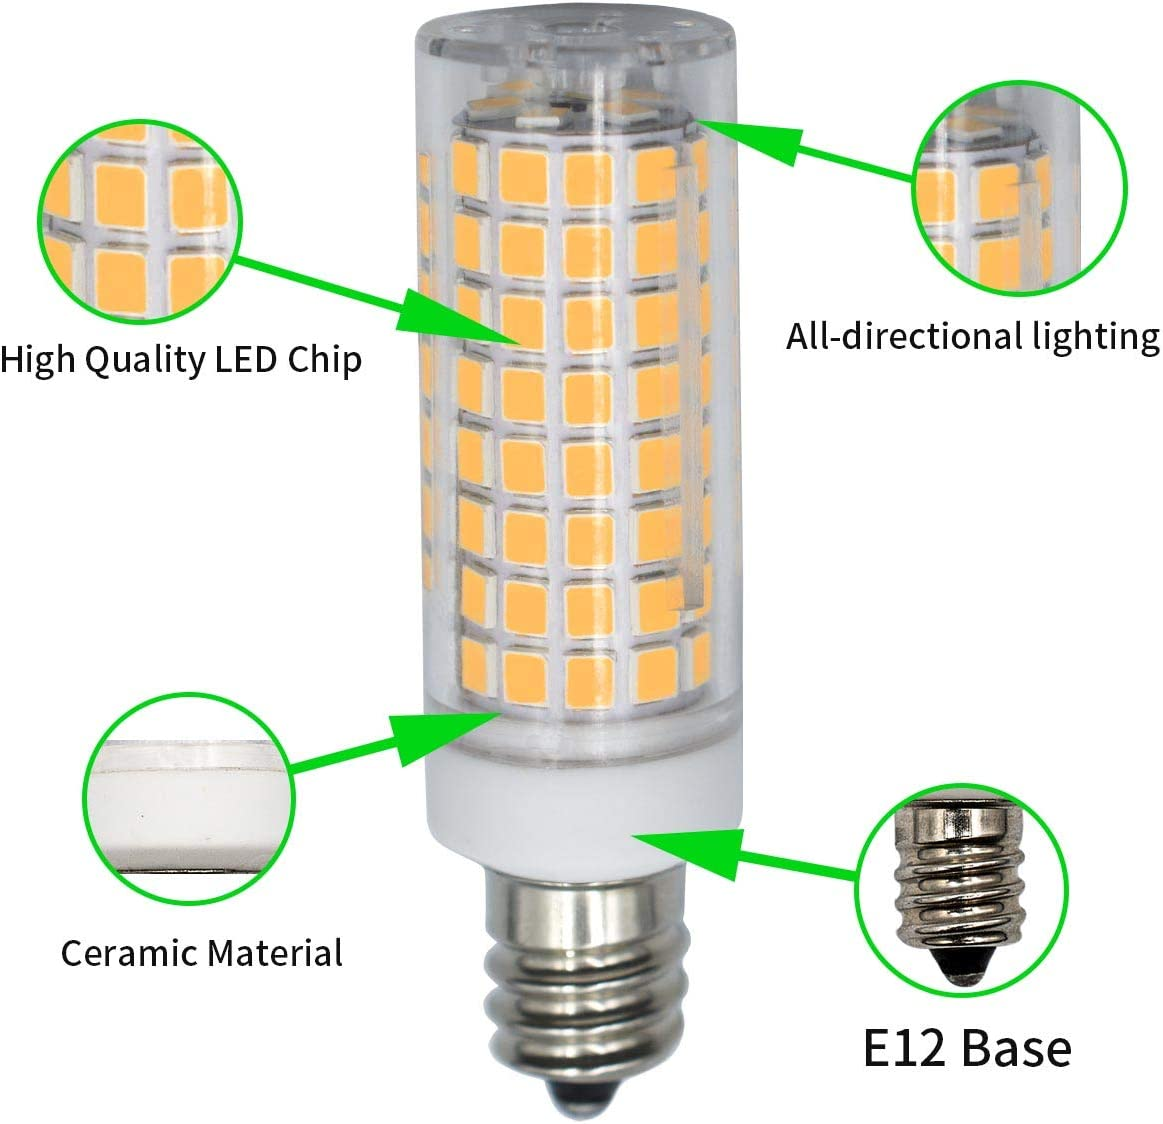 Pack of 4 E12 60W 70W Halogen Equivalent LED Light Bulb Dimmable Warm White 3000K 5w 6W 600Lumen AC 110V 120V 360/°Beam Angle T3 T4 Base Ceiling Fan Bulbs and Chandeliers